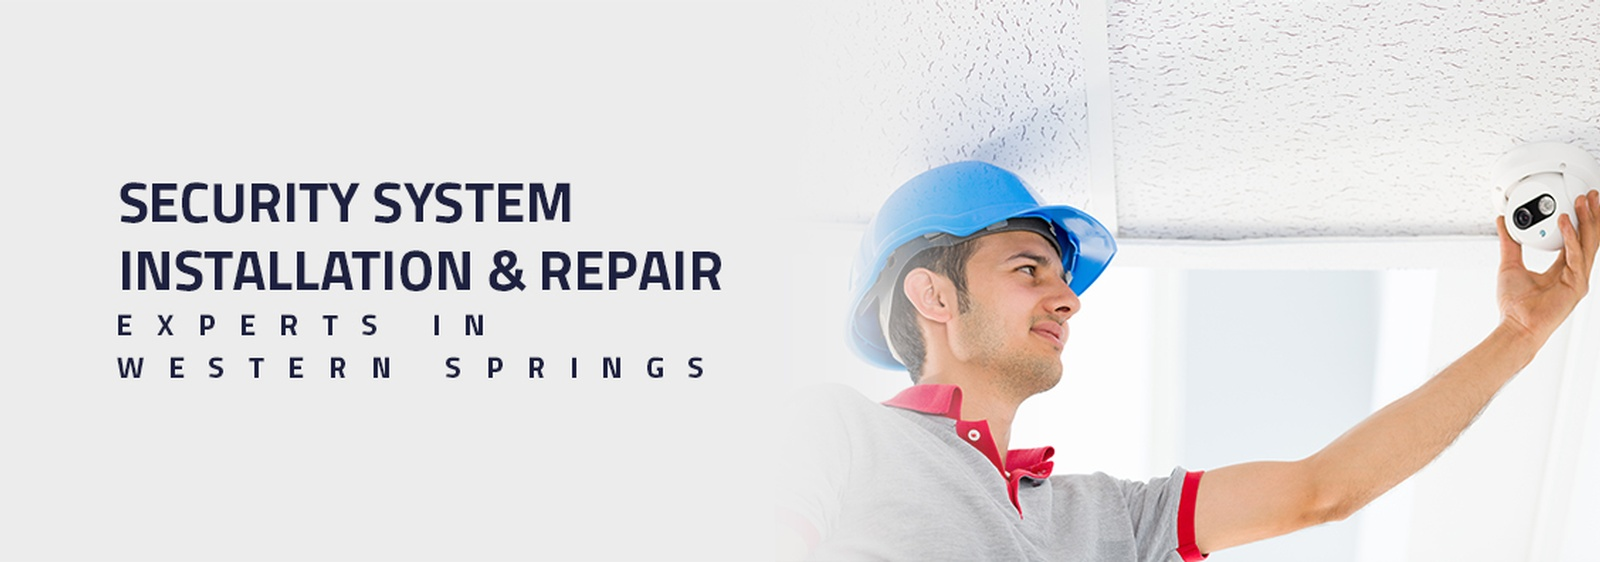 Security System Installation & Repair Experts in Western Springs